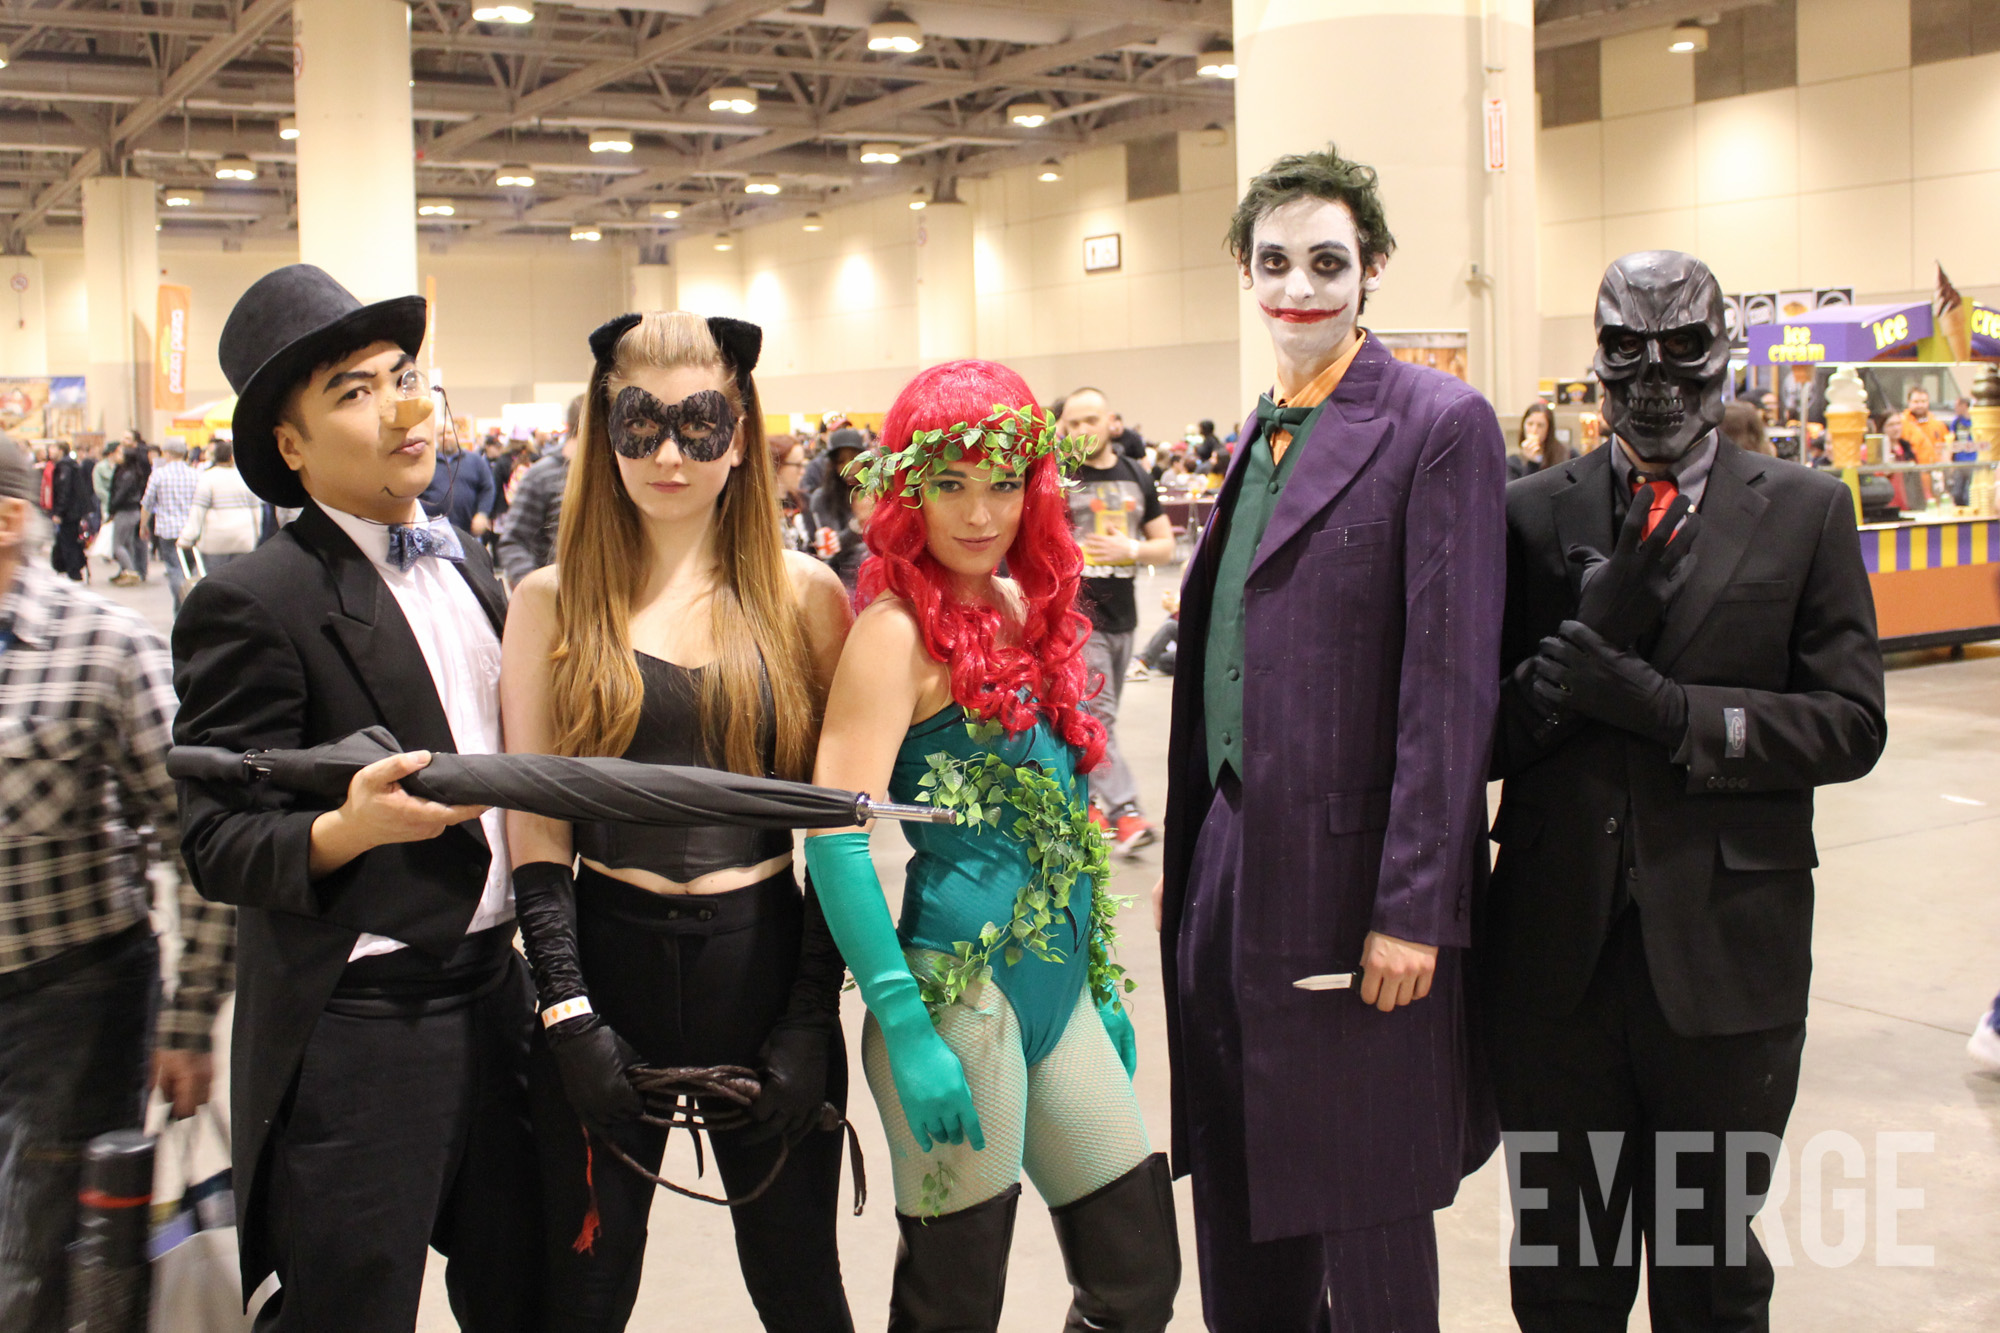 Penguin, Catwoman, Poison Ivy, Joker and Black Mask. No this is not the Justice League